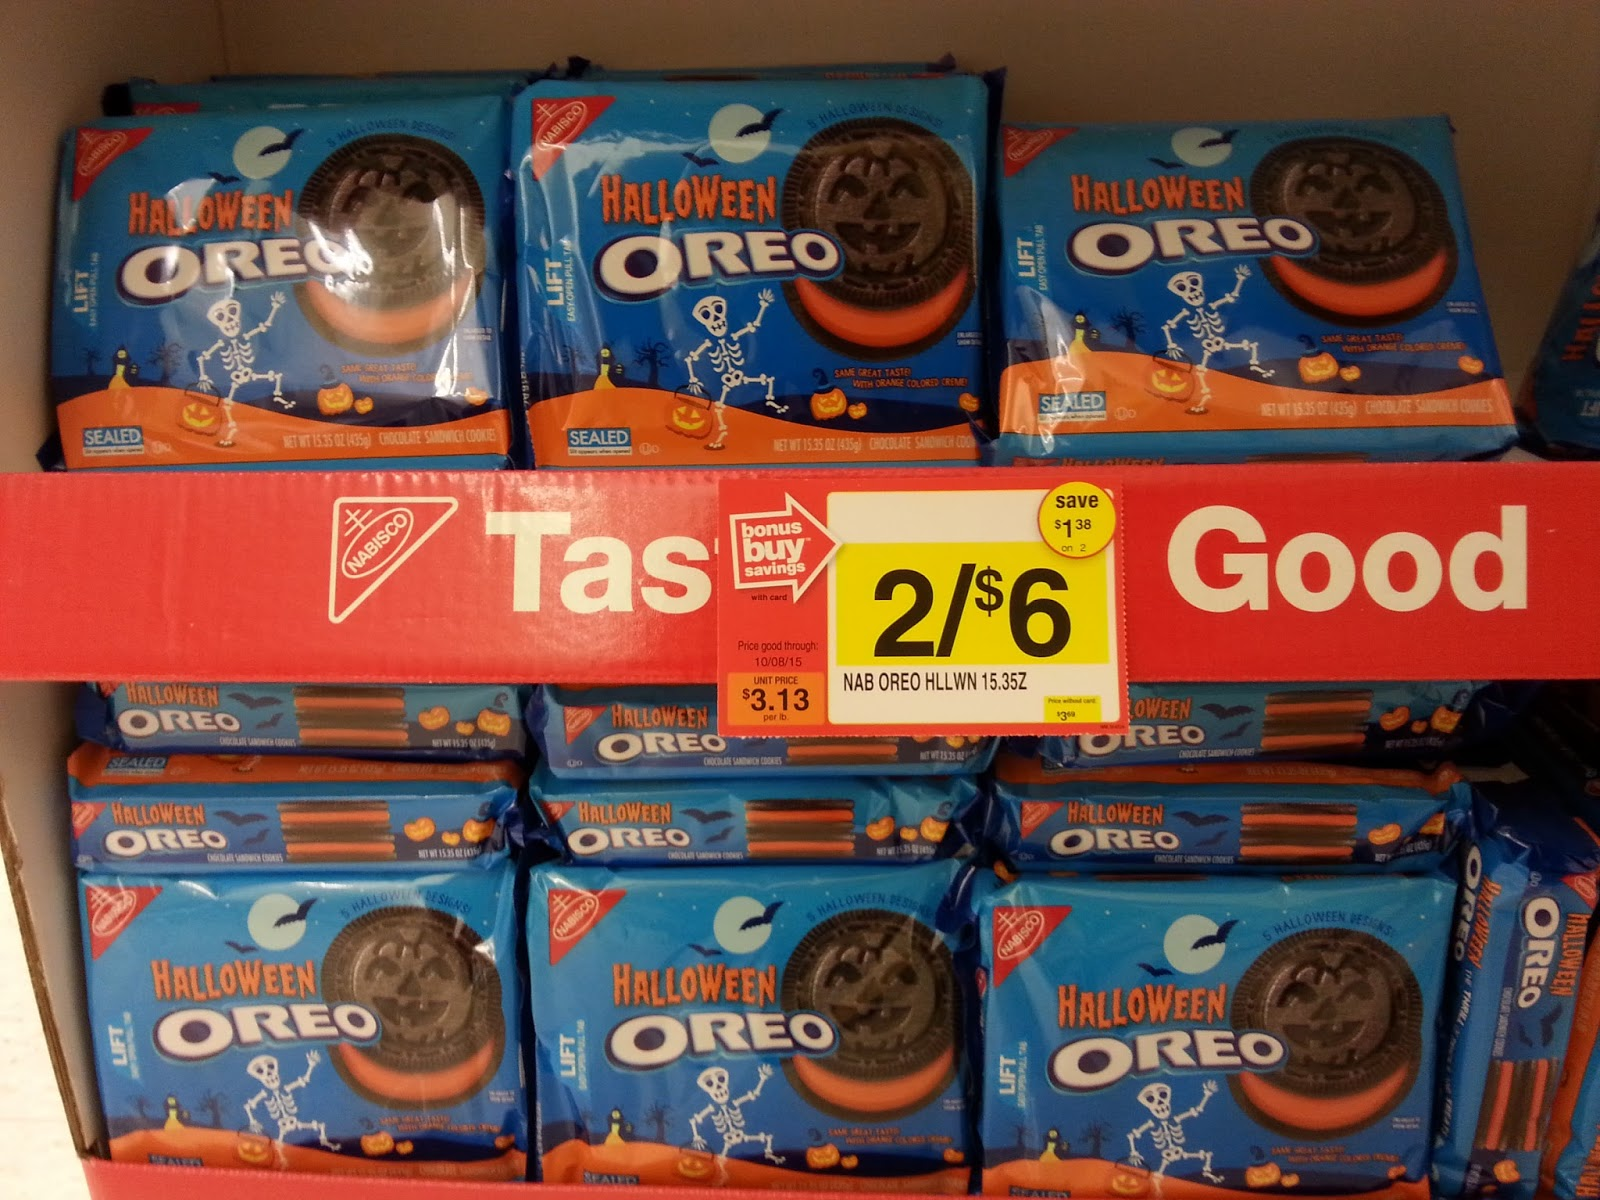 MONSTER DAD: The Overwhelming Onslaught of Oreos